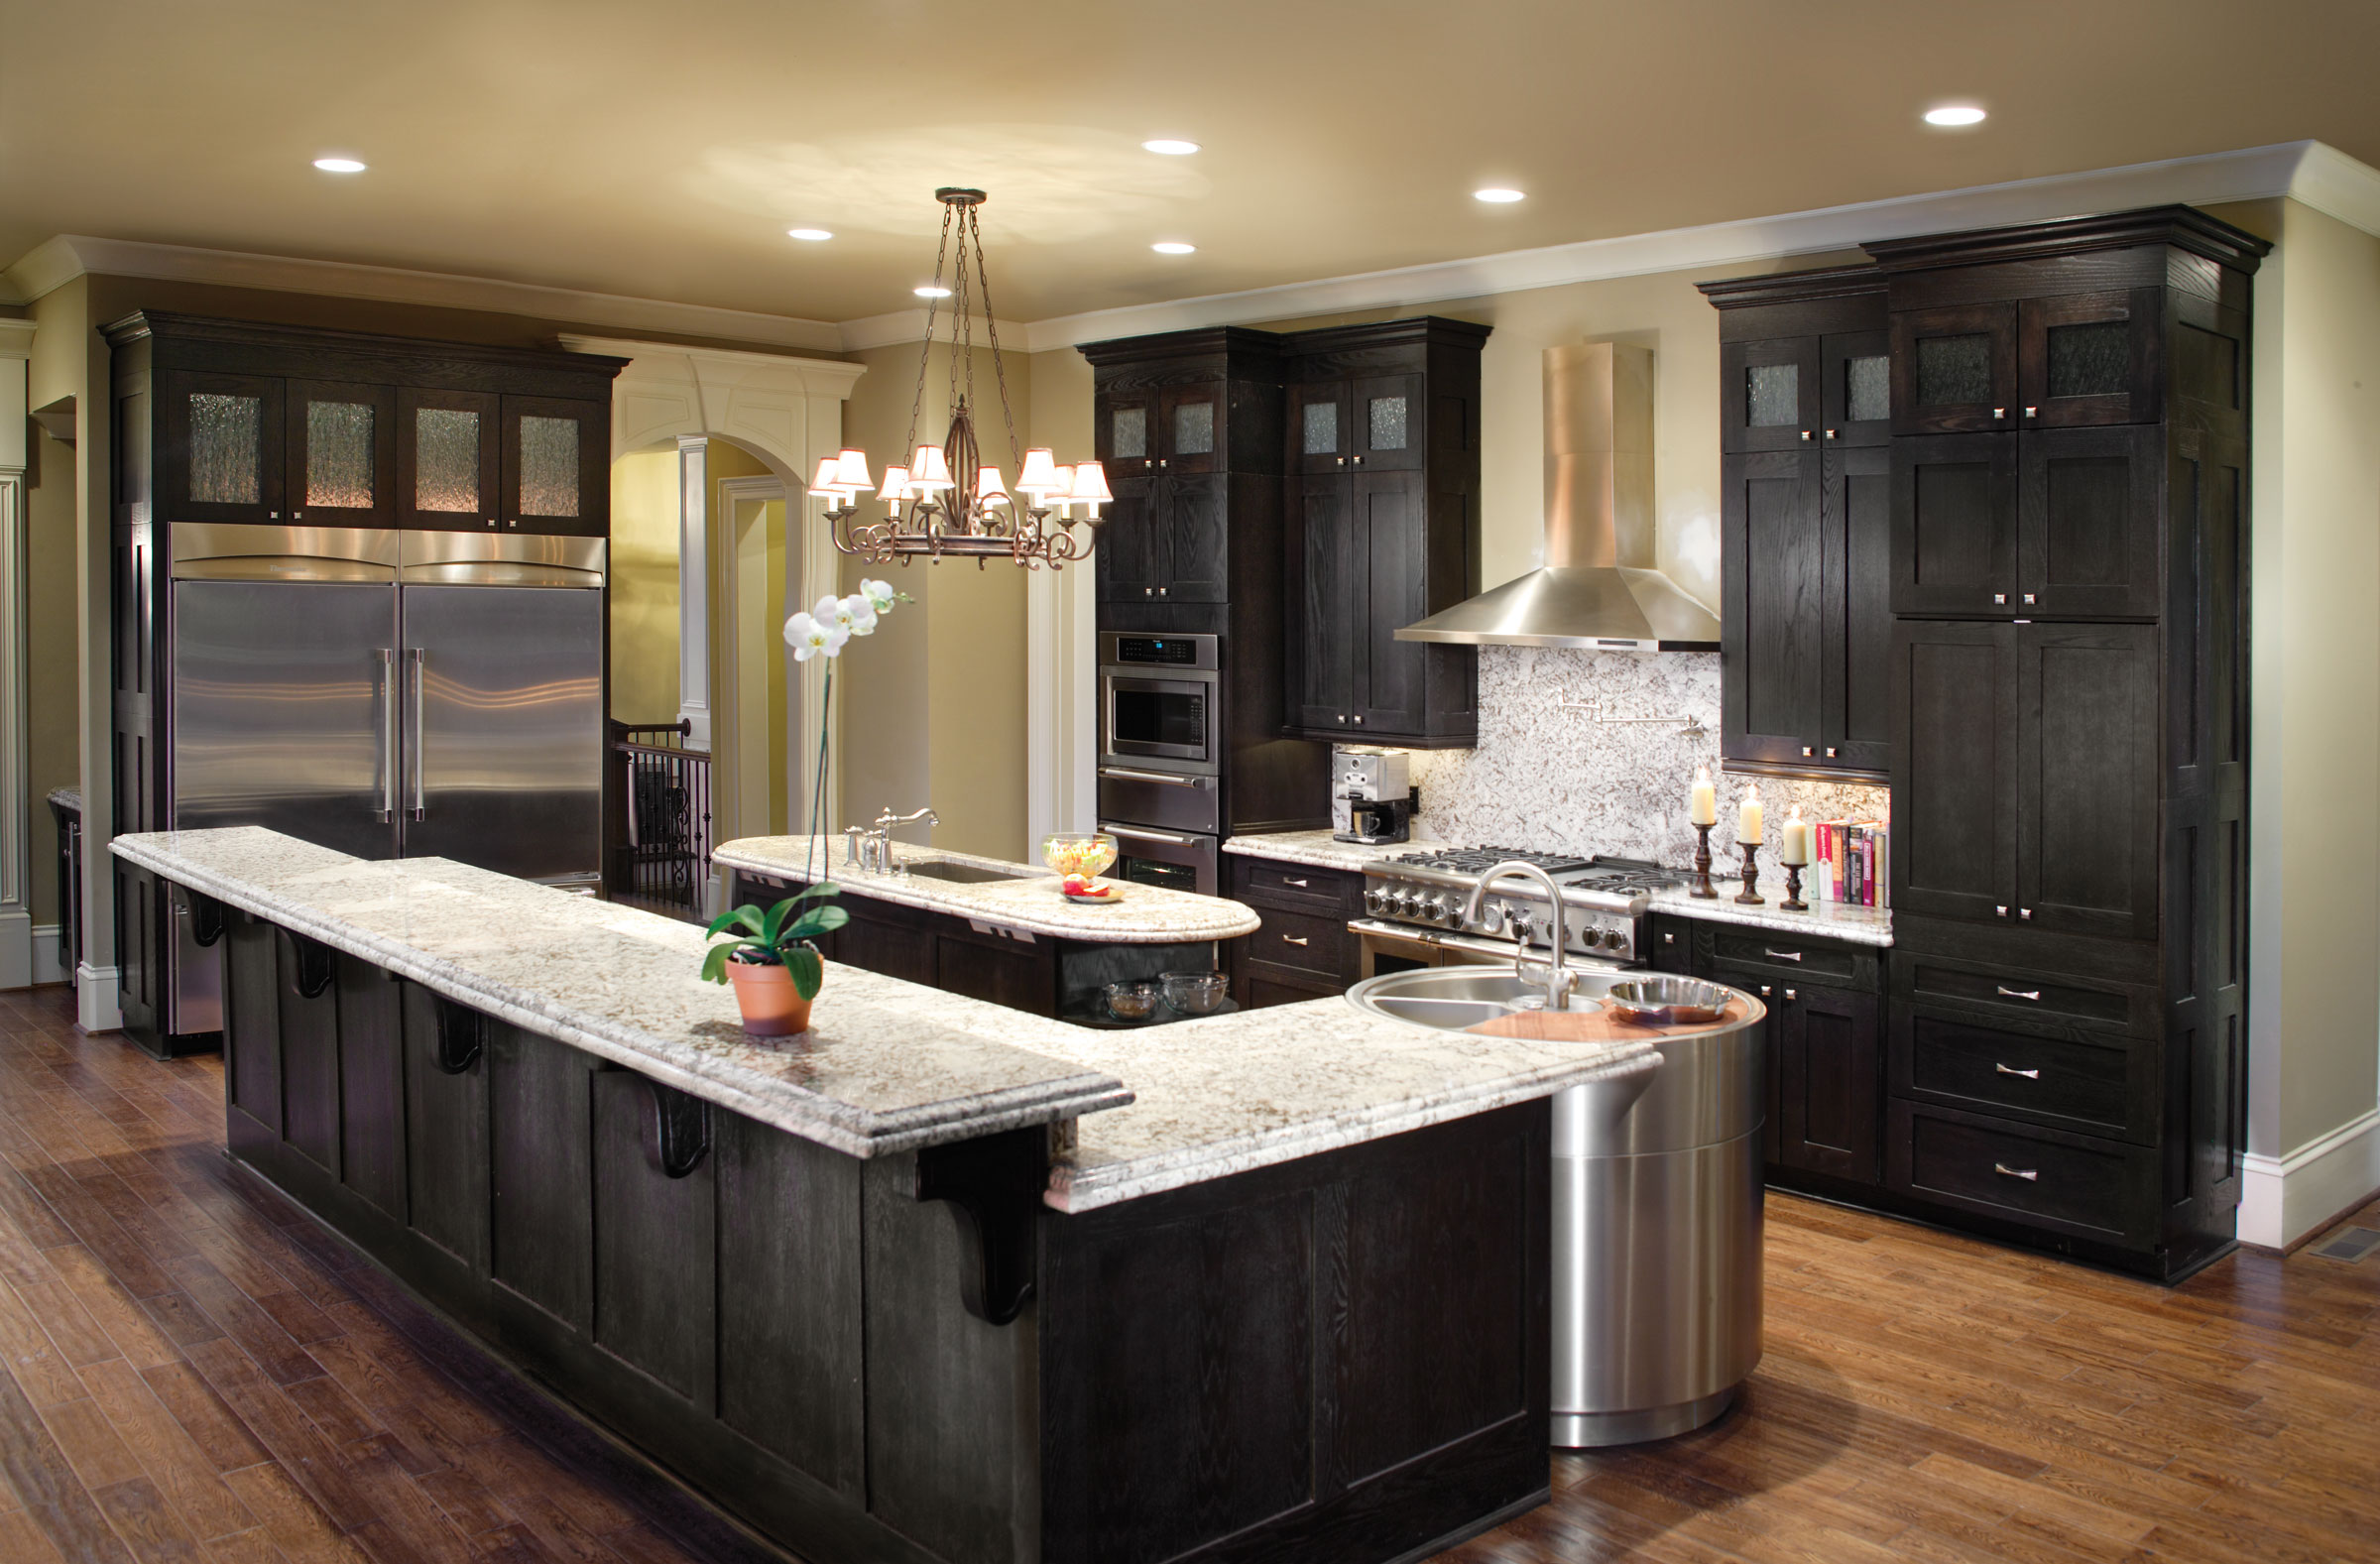 Custom bathroom kitchen cabinets phoenix cabinets by for Kitchen counter cabinet design